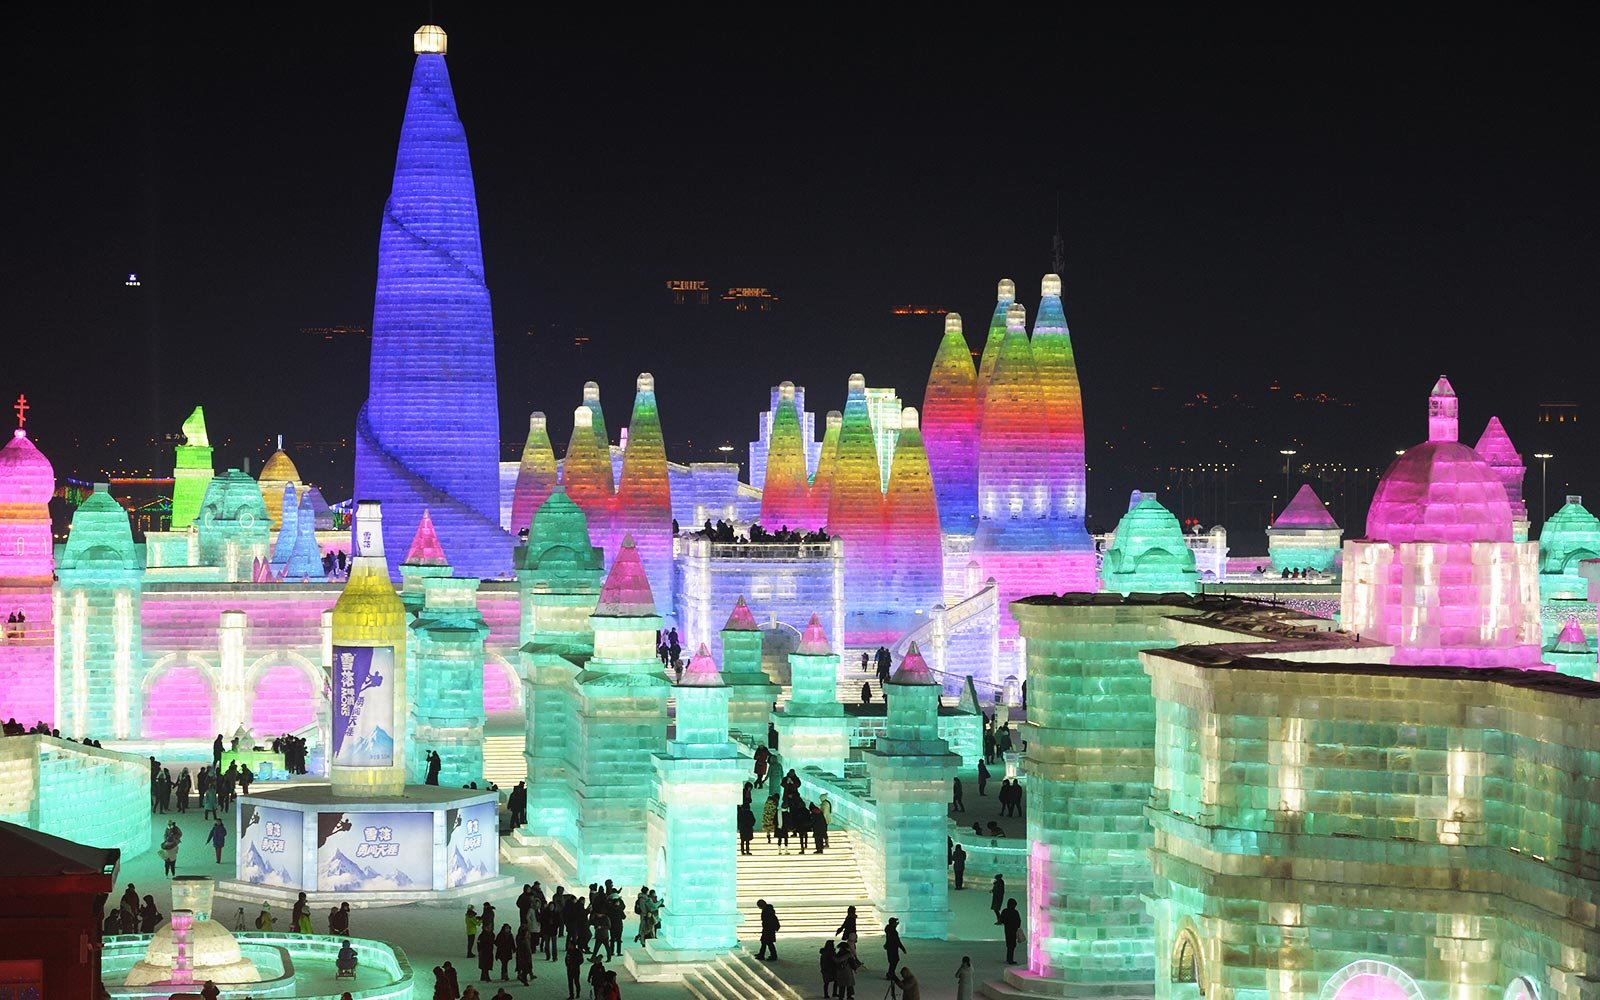 Stunning Photos From The World's Largest Ice Festival